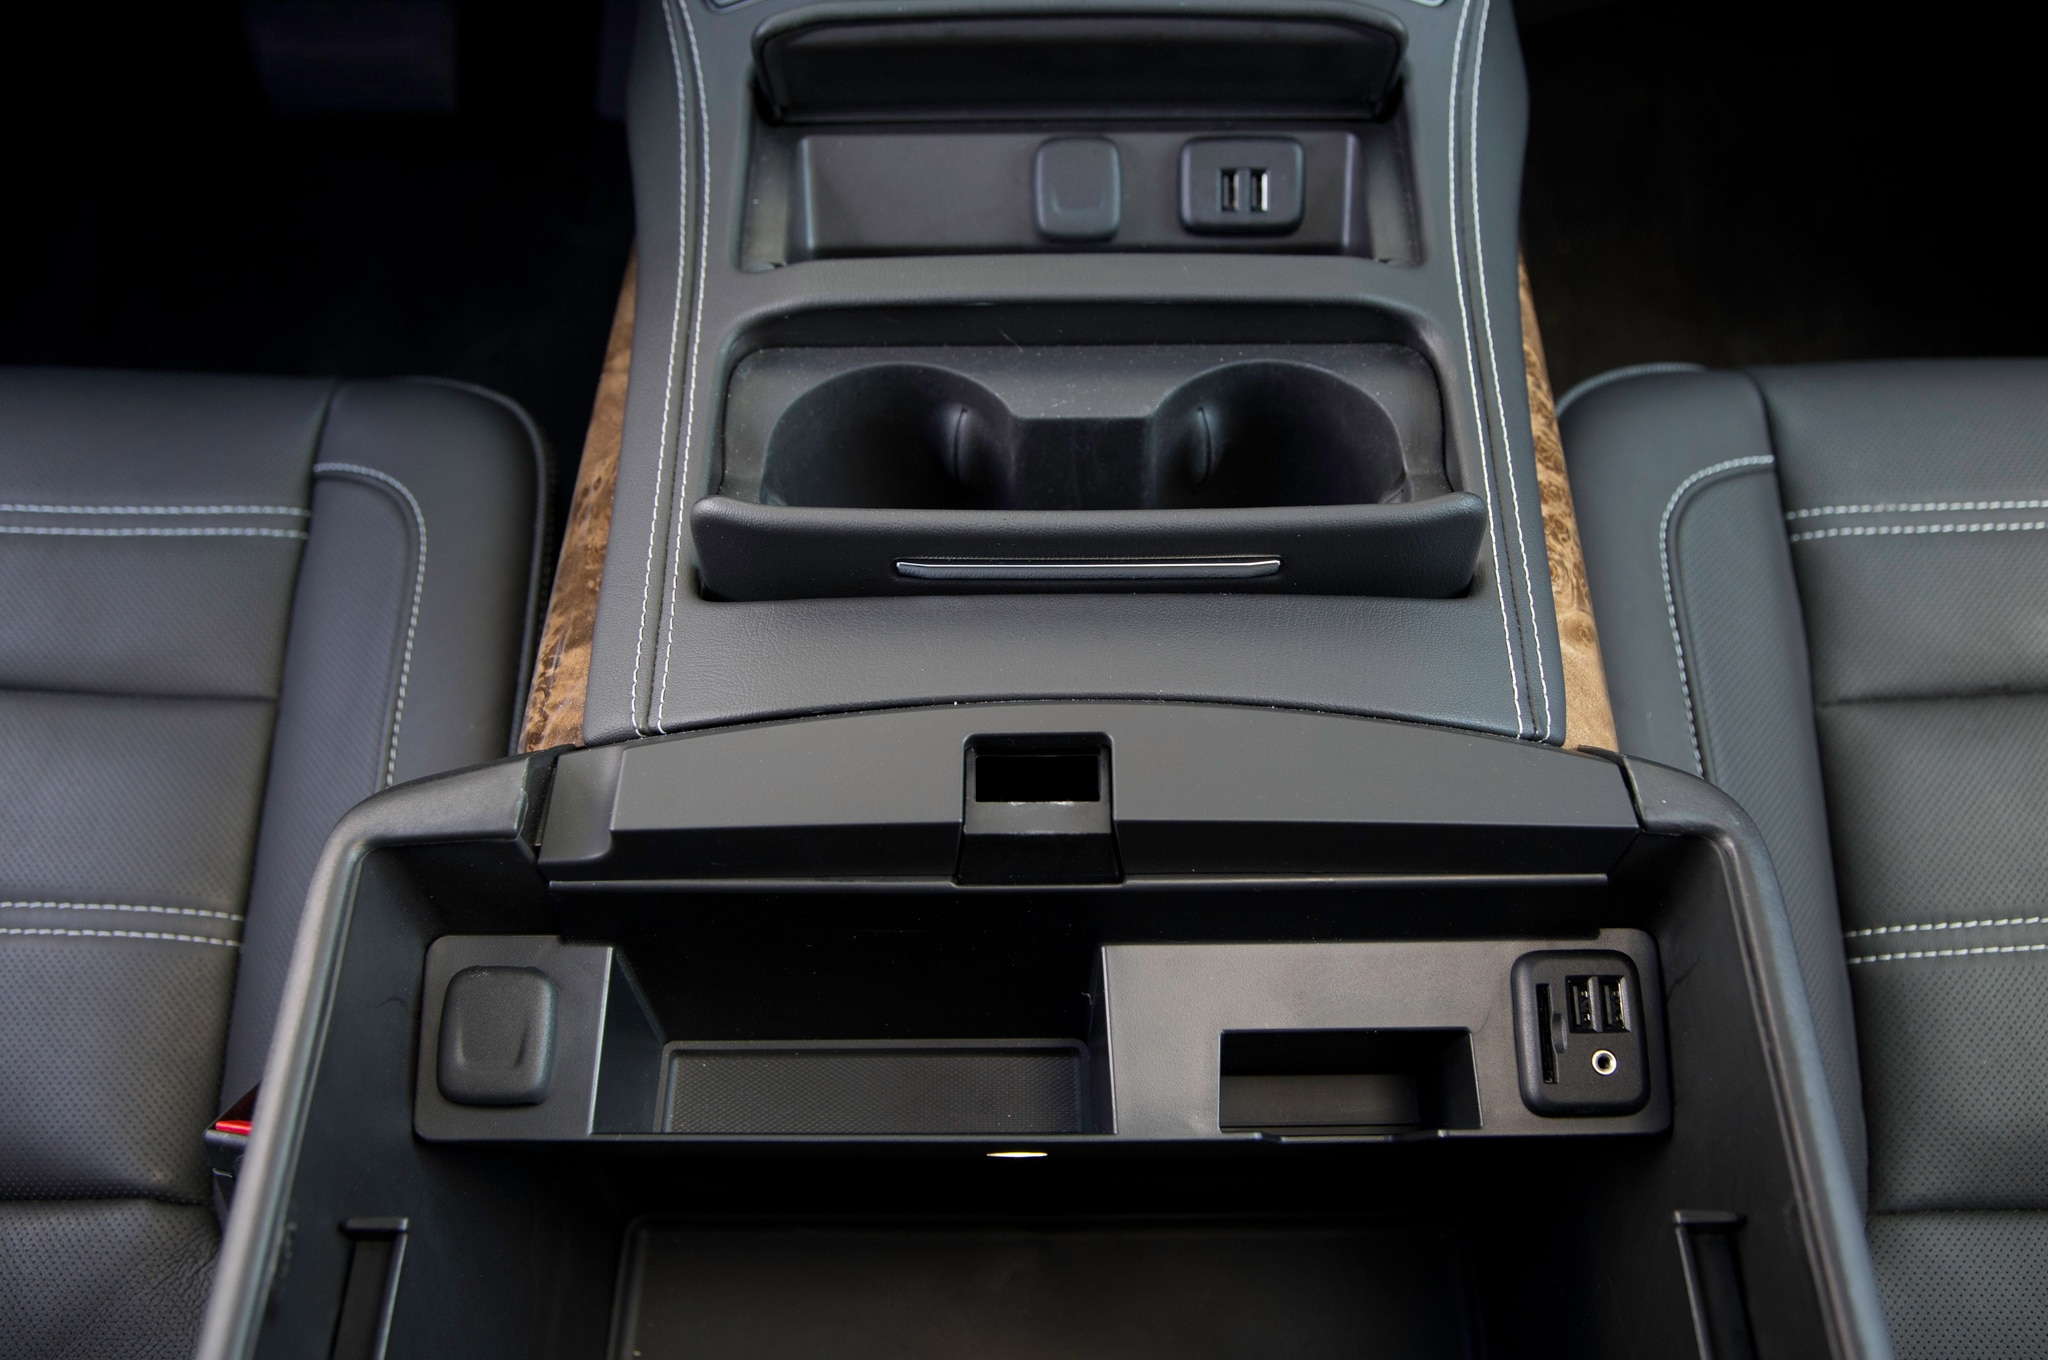 2017 Gmc Yukon Denali Center Console 28 Junio 2016 Wpengine